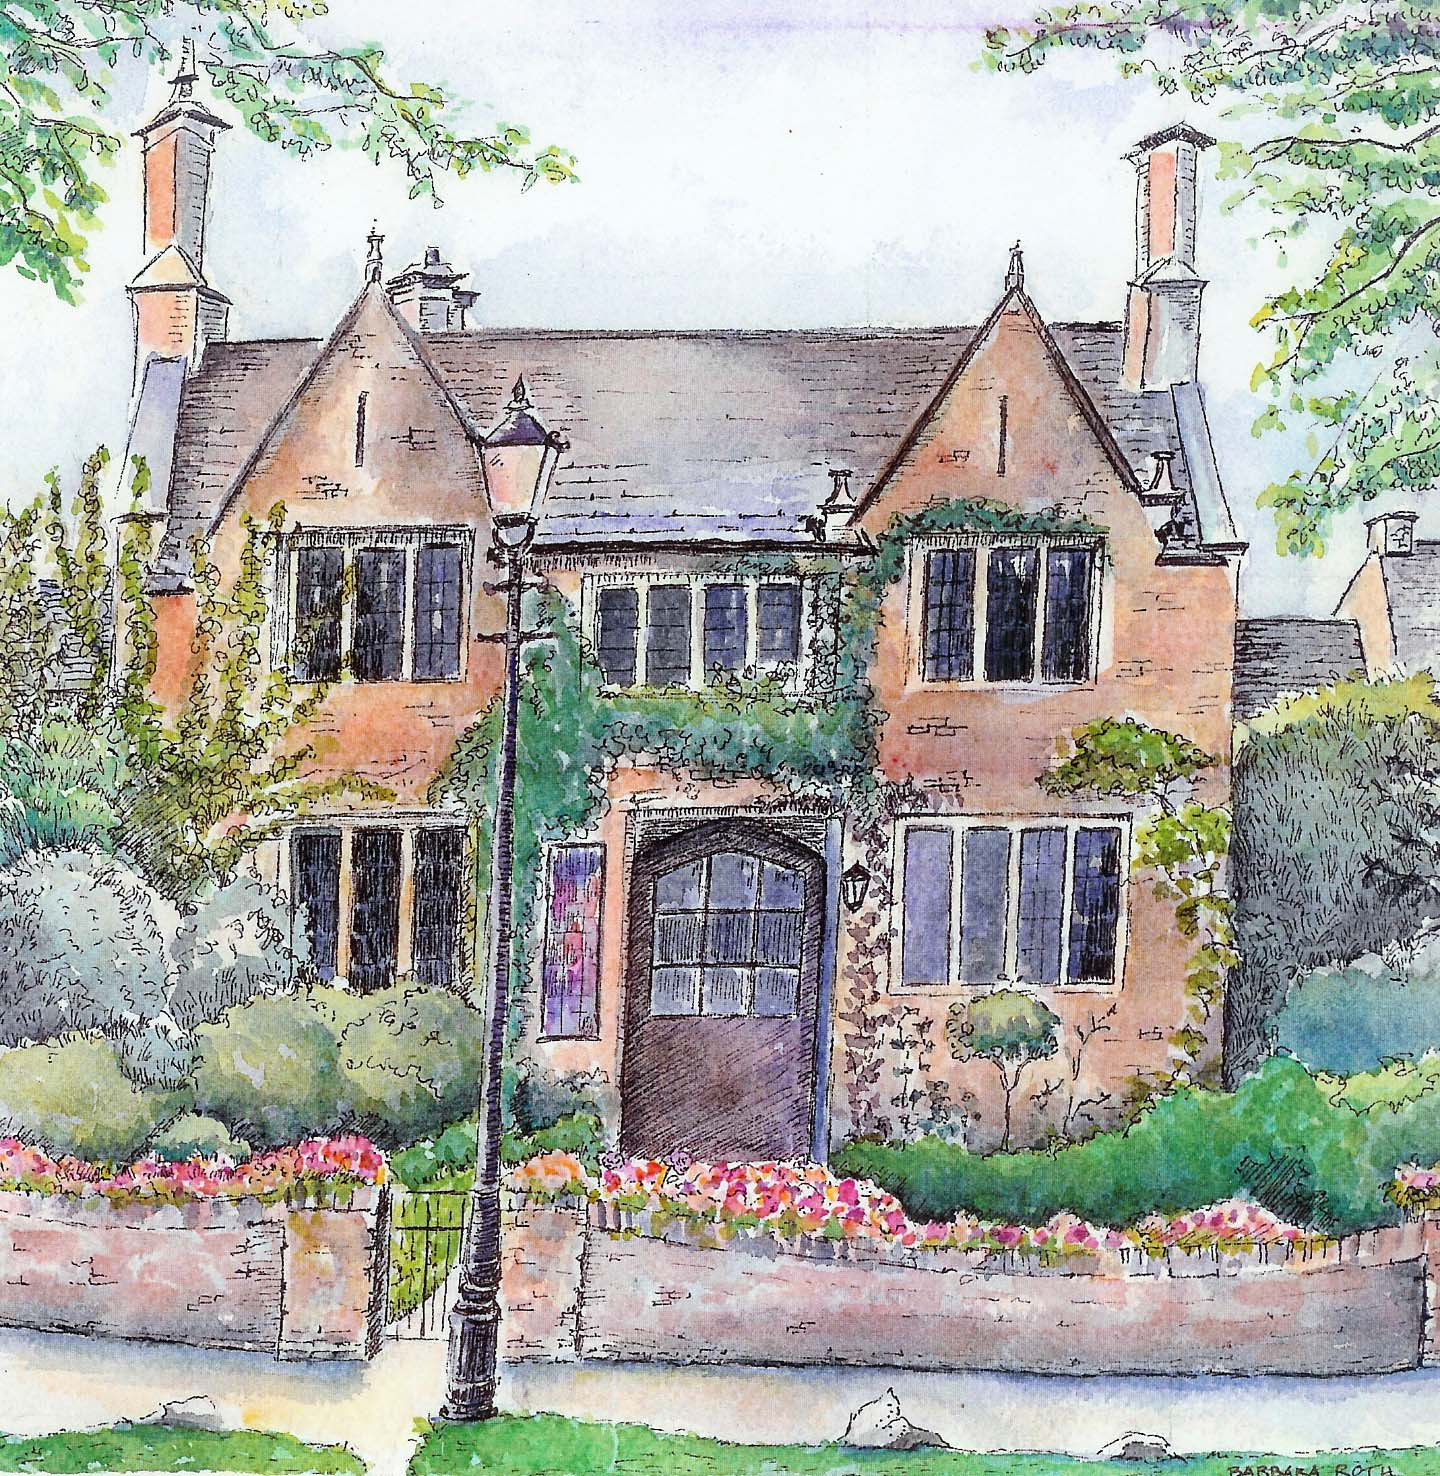 English Cottage Village: Anywhere Art Studio Ruminations: What Do You Think About